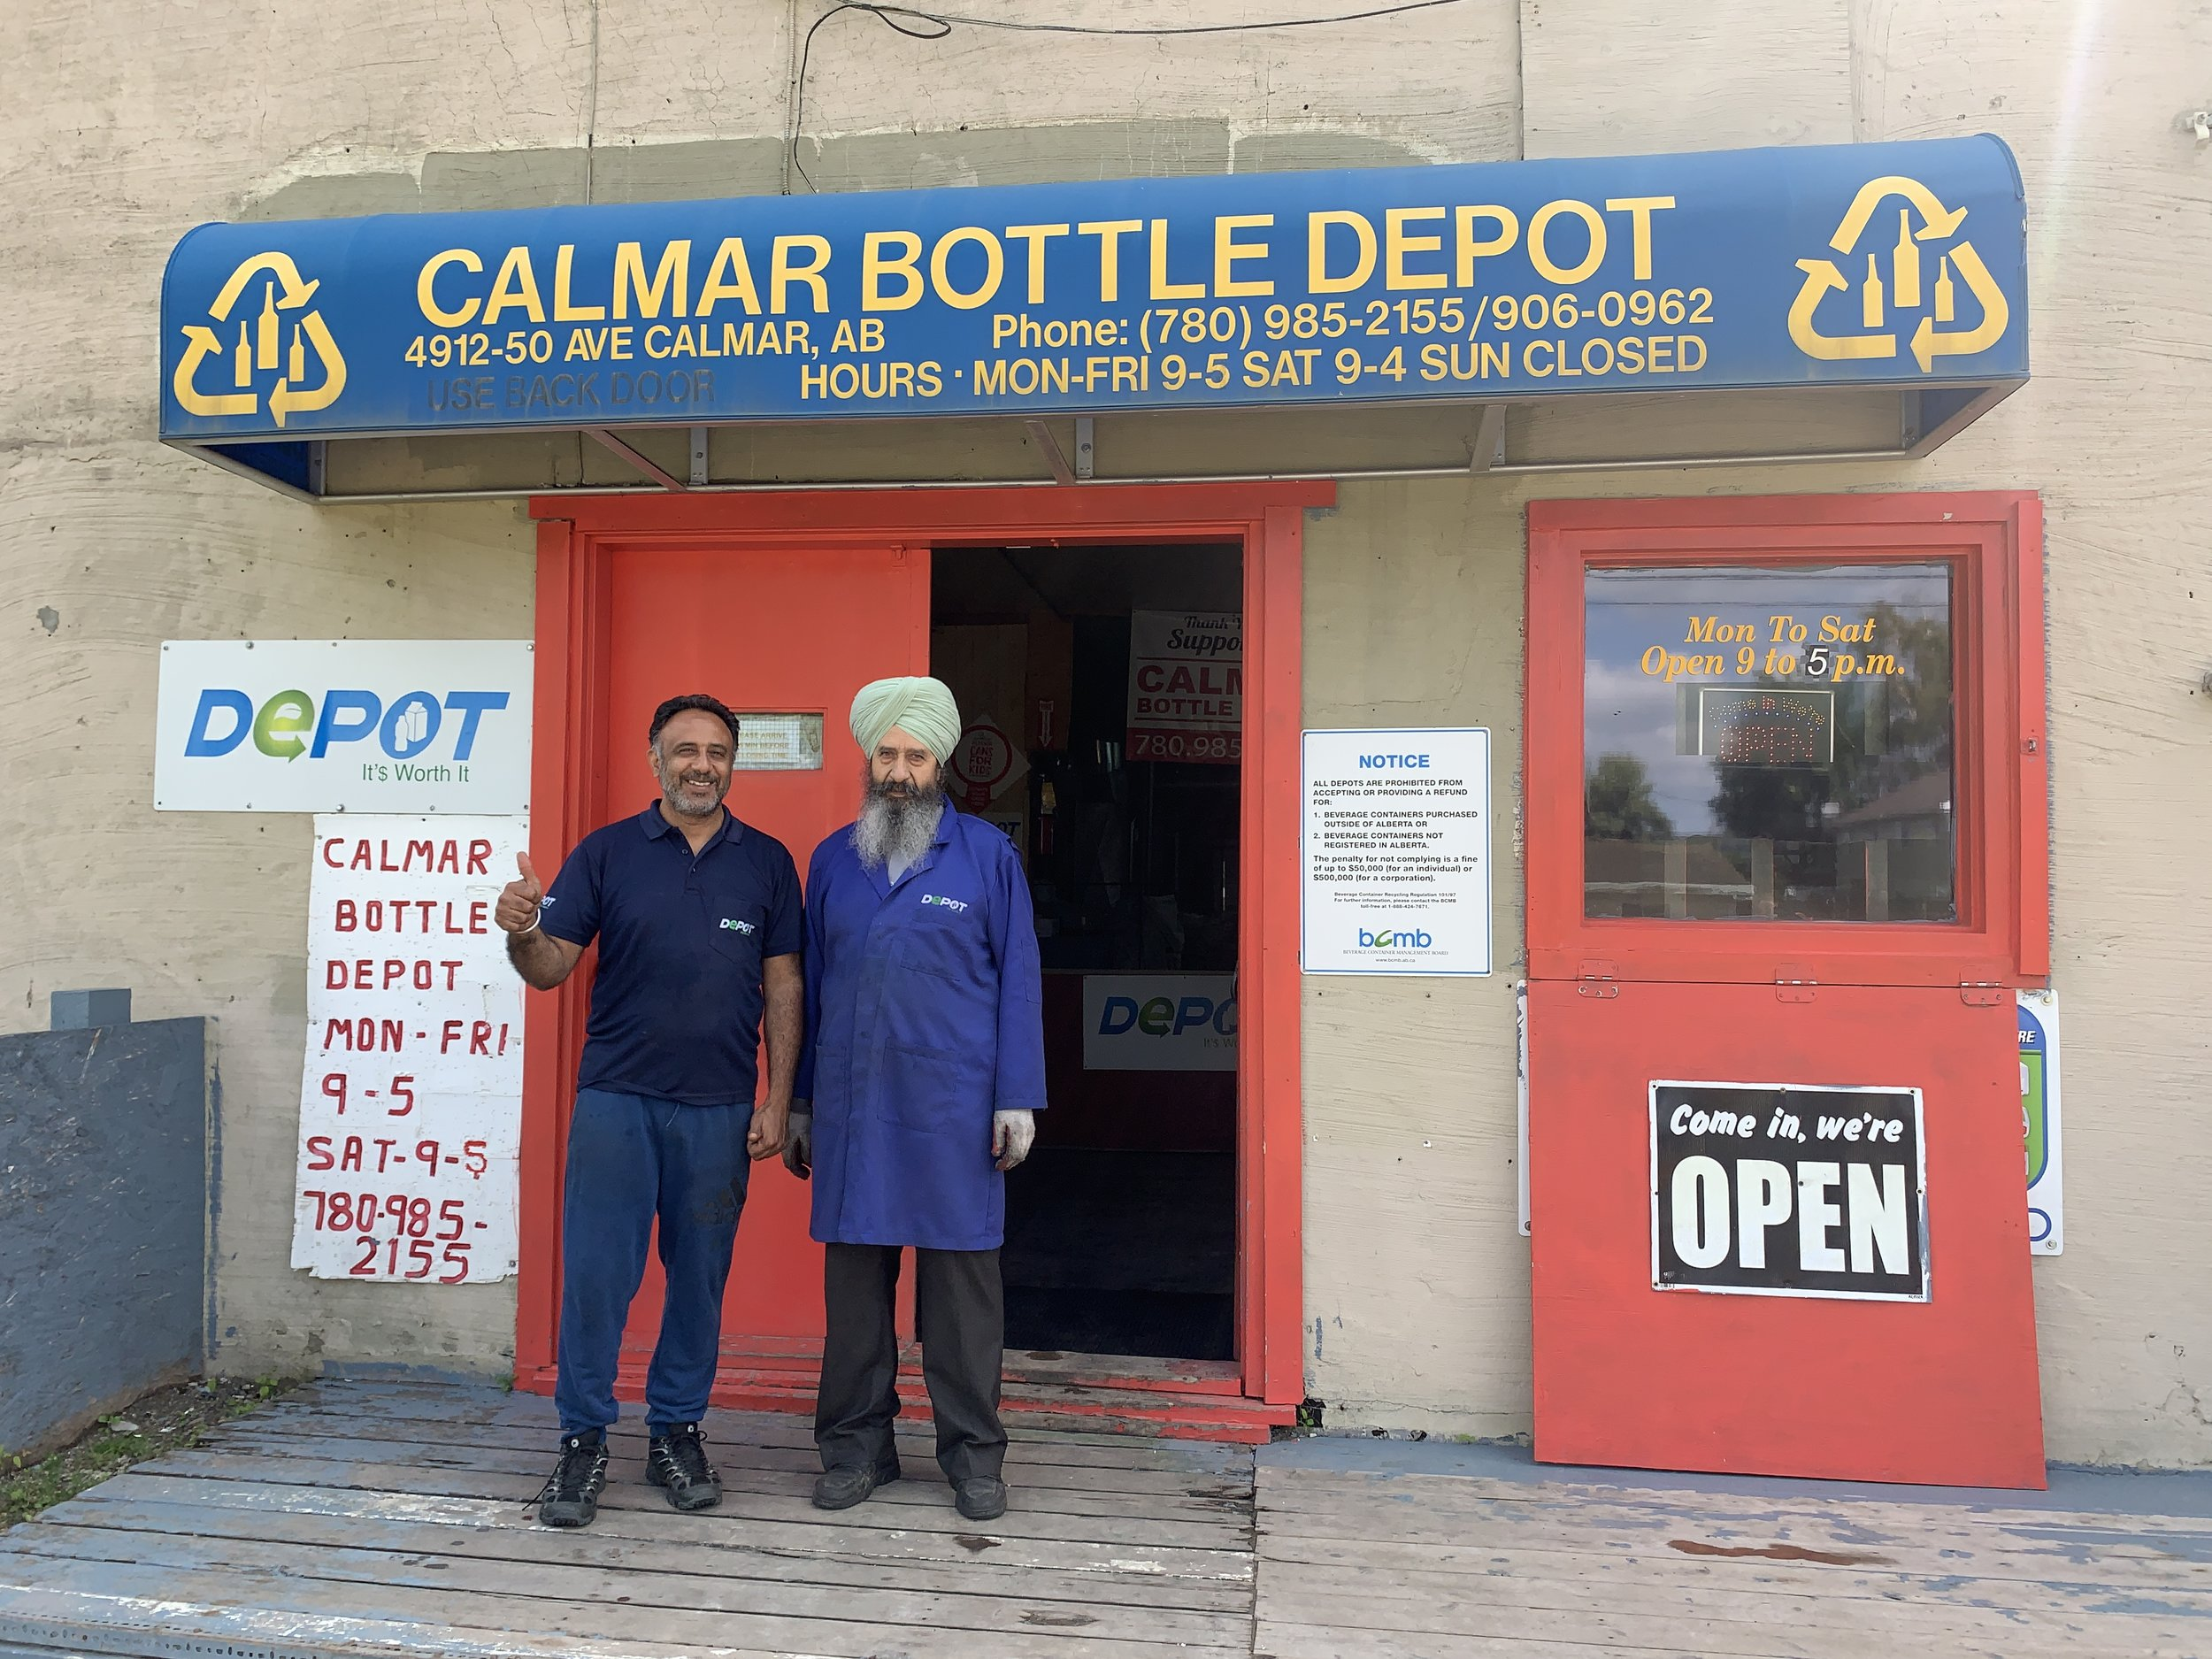 Calmar Bottle Depot